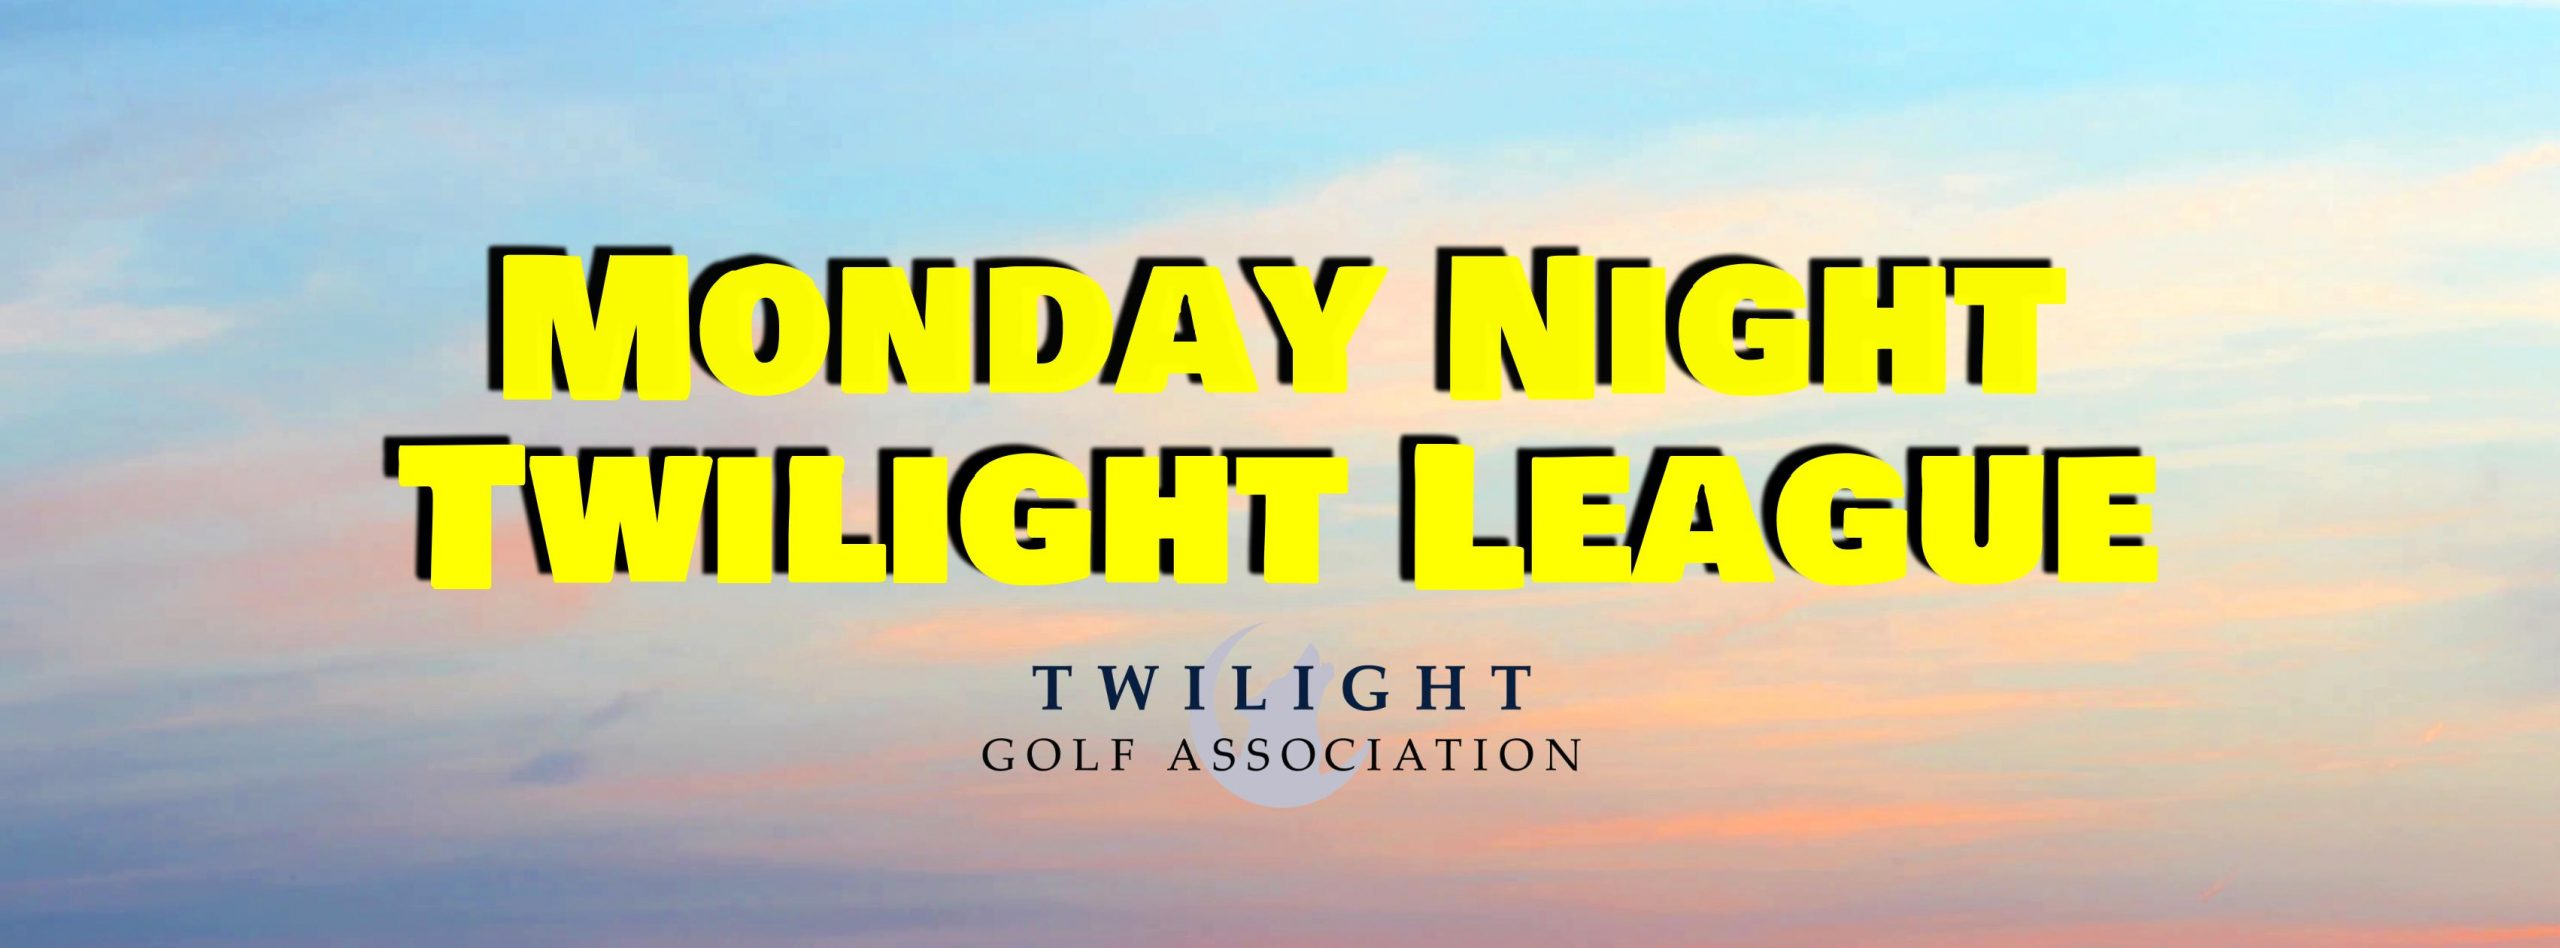 Monday Night Twilight League at Tri County Golf Ranch